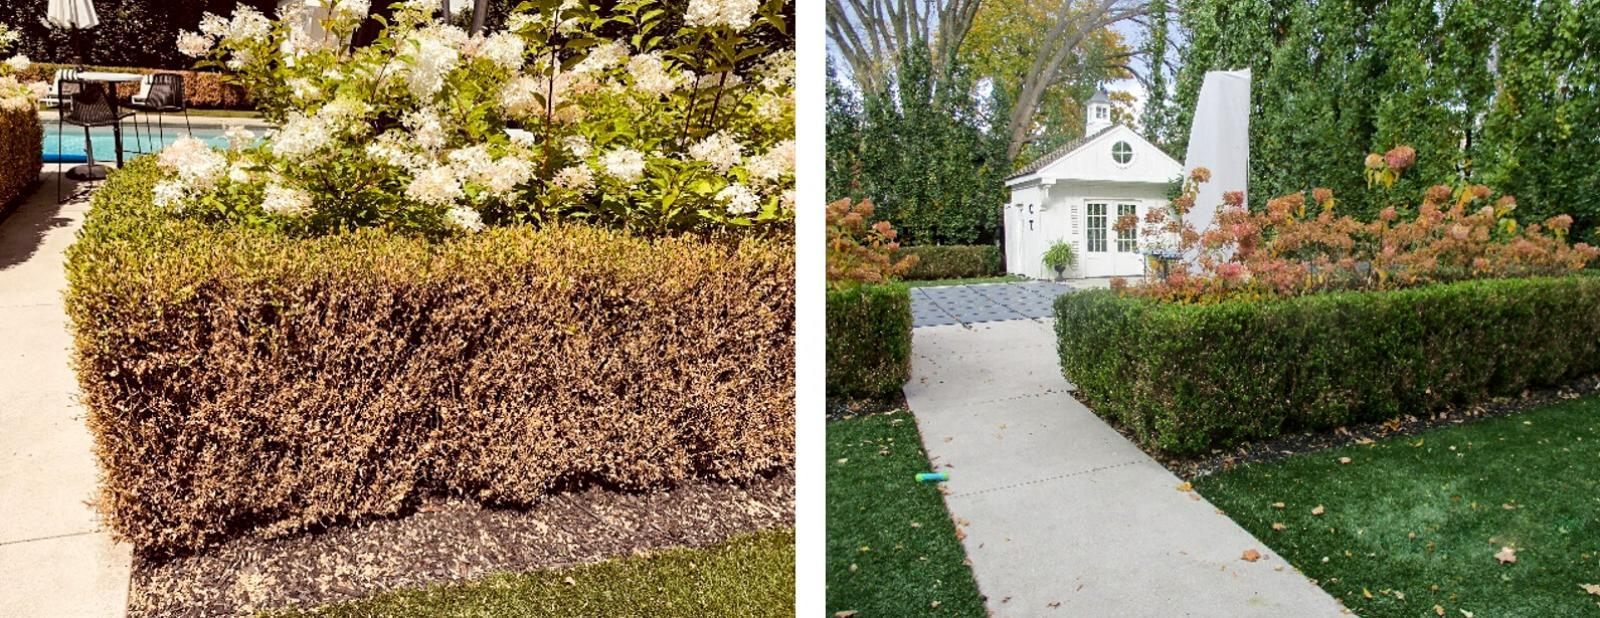 A boxwood hedge before and after treatment.